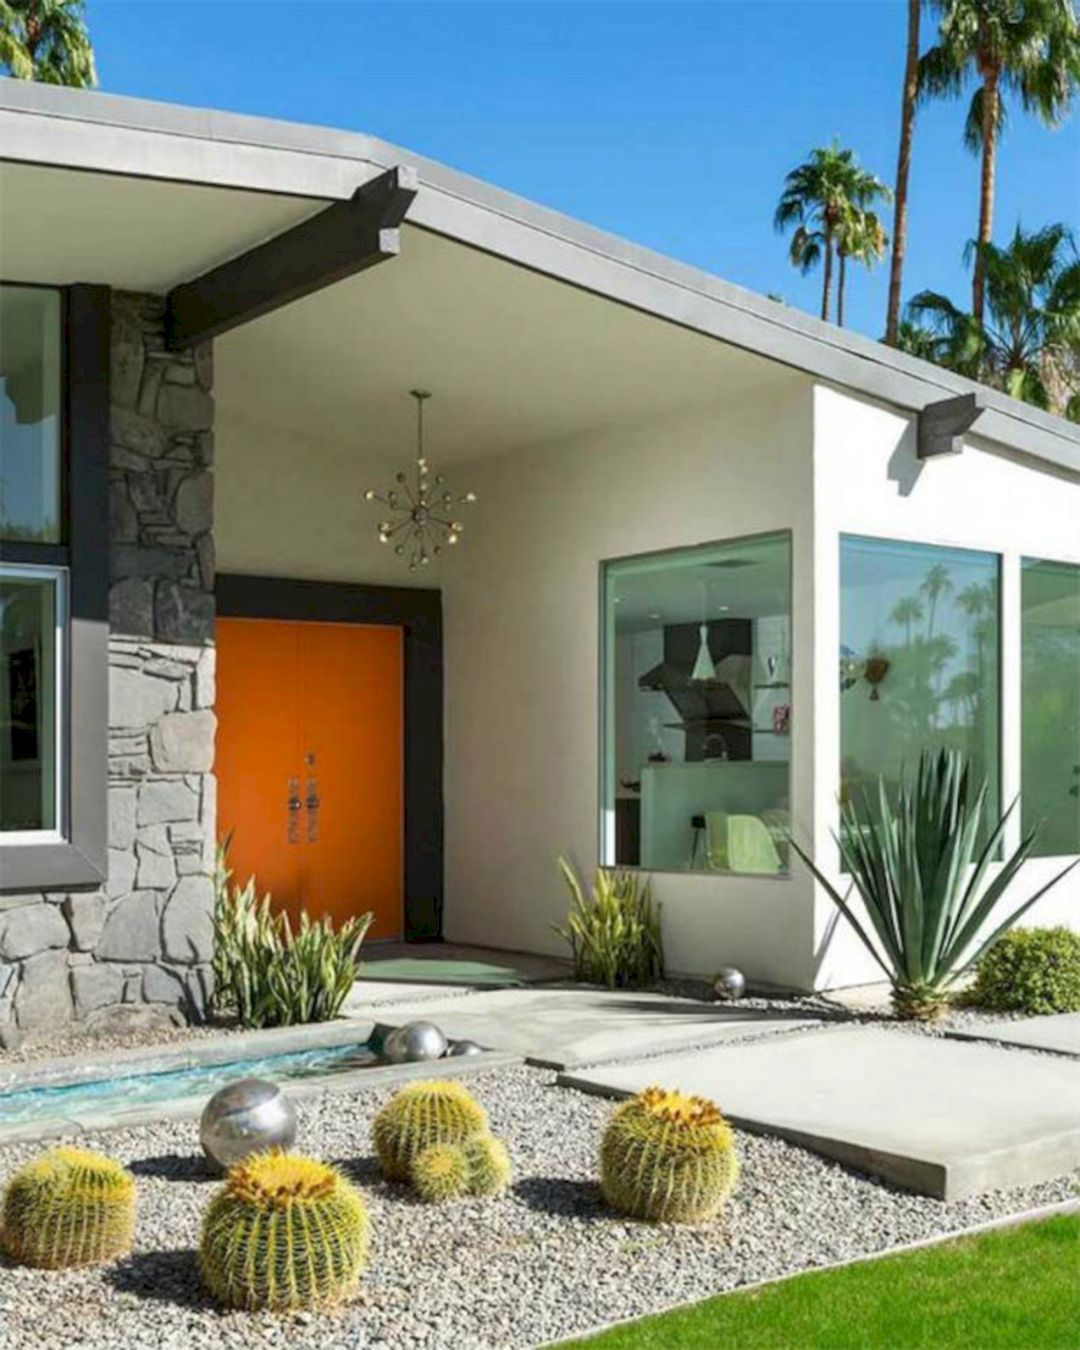 20 Unbelievably Beautiful Contemporary Home Exterior Designs: Top 20+ Most Beautiful Mid Century Modern Backyard Design Ideas